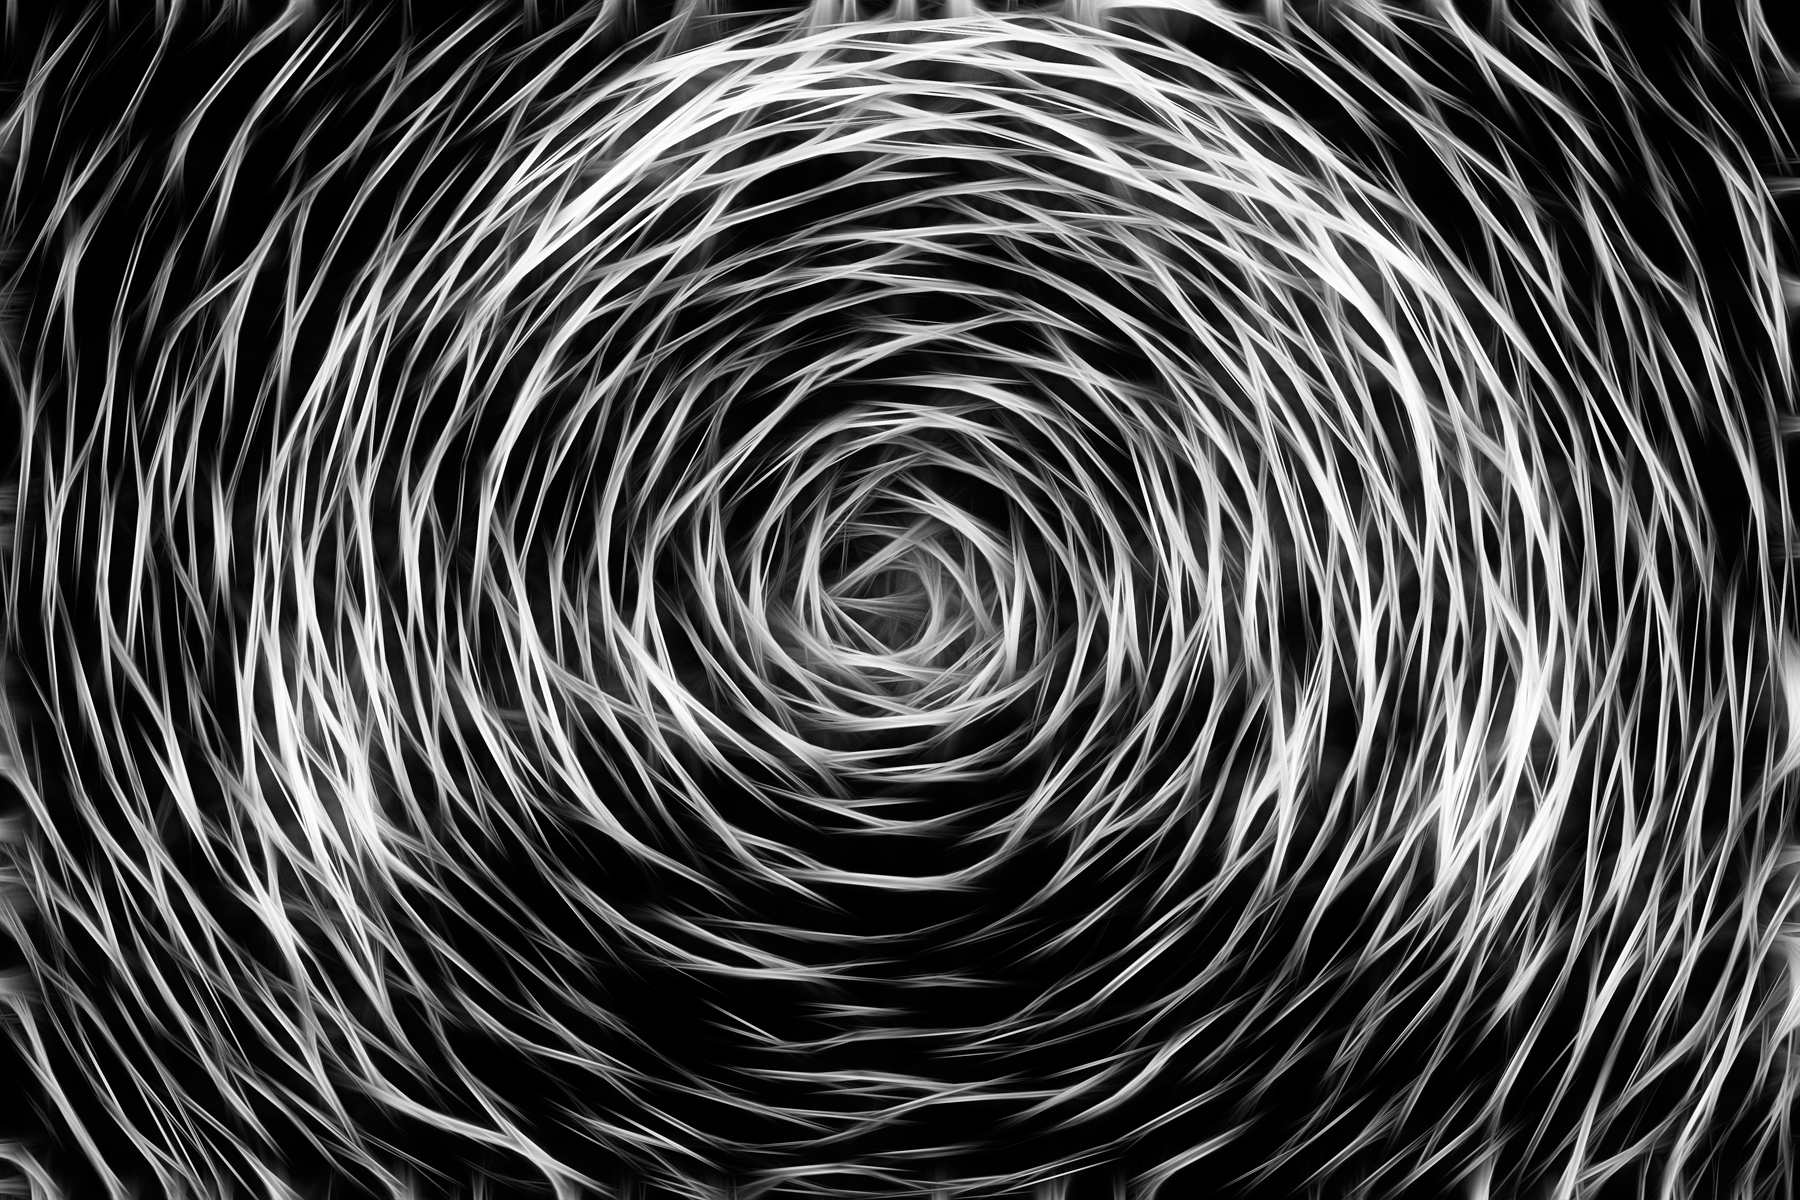 Spinning Sketch Abstract, Abstract, Somadjinn, Picture, Resource, HQ Photo